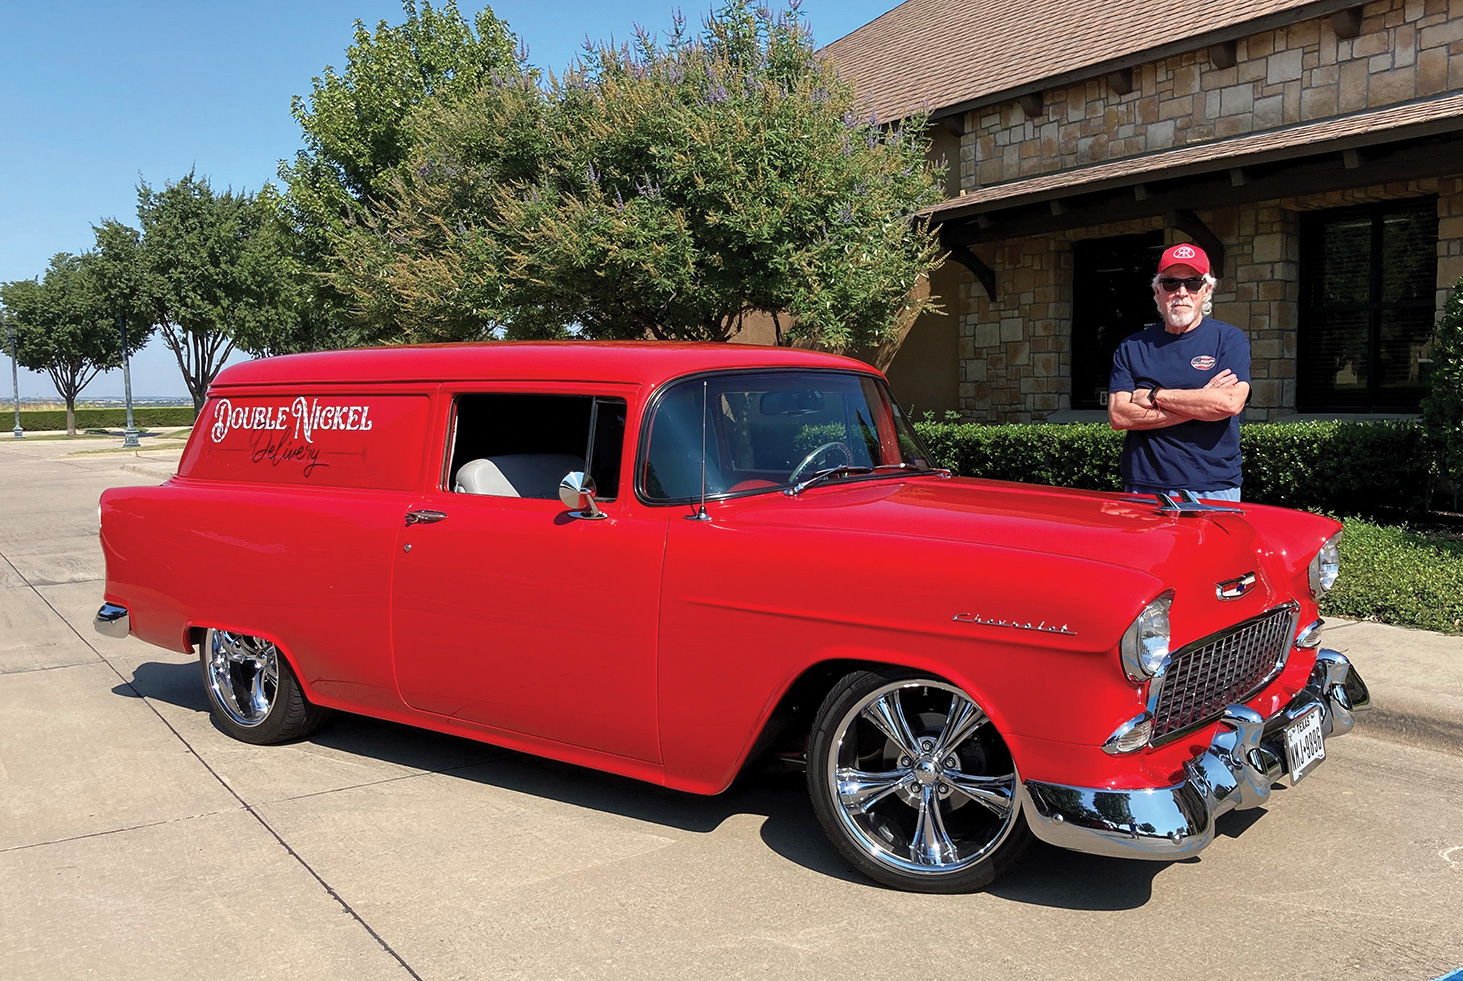 Ricke Rubin with his 1955 Chevrolet Sedan Delivery